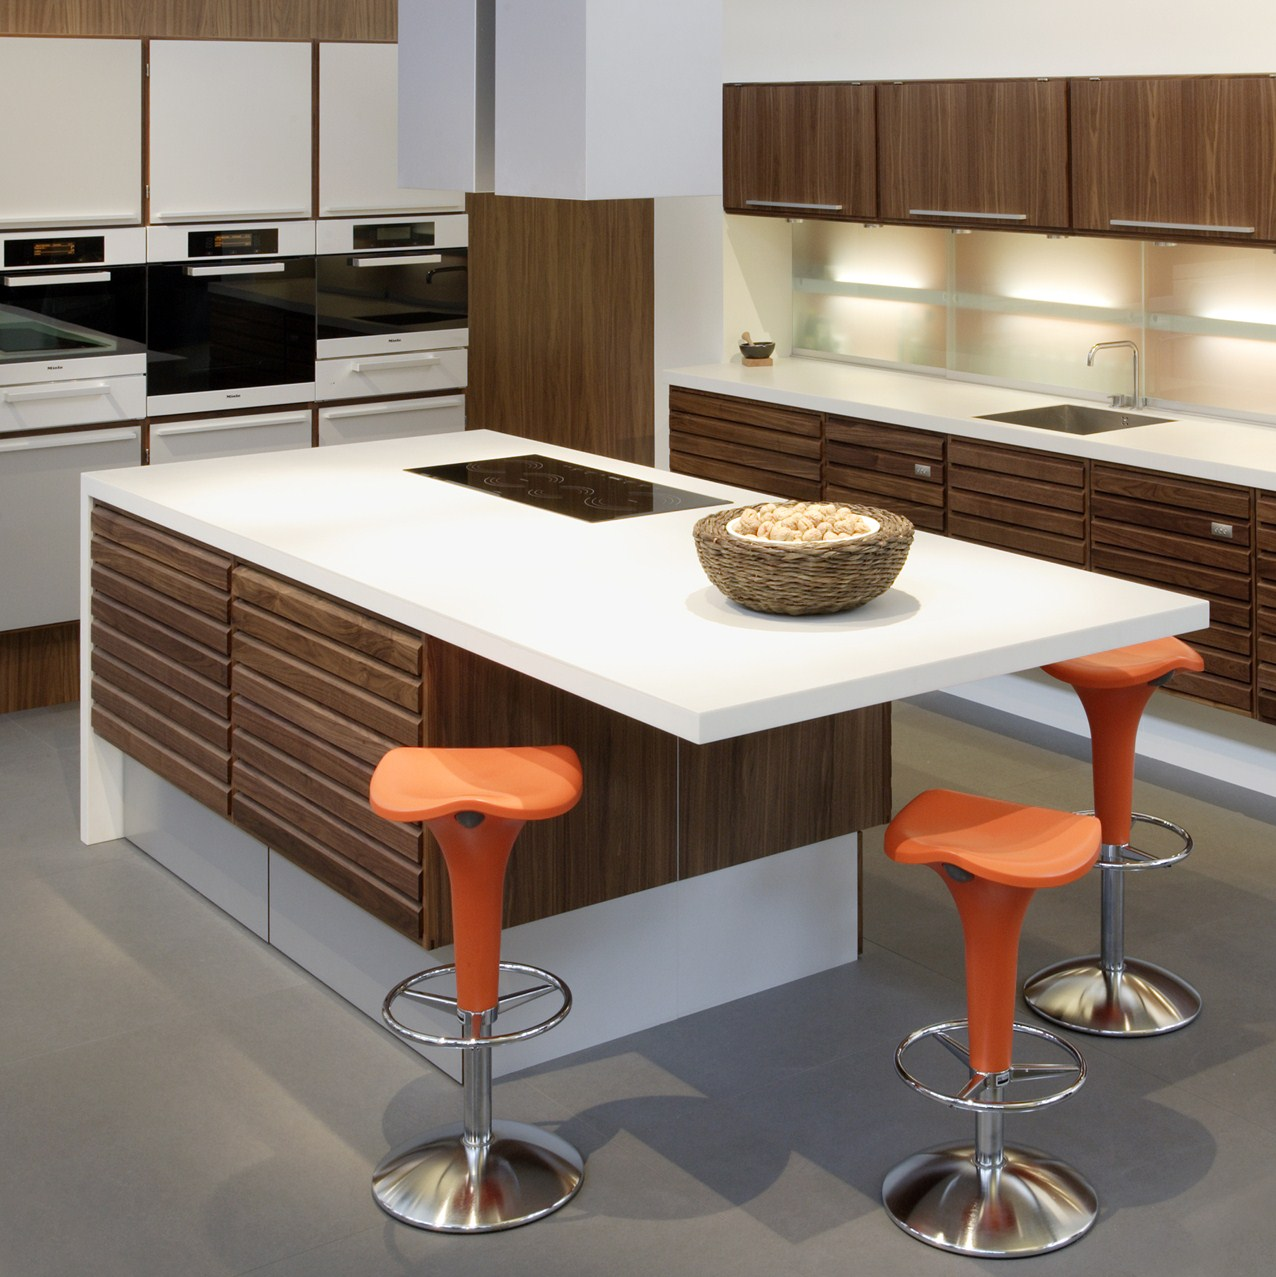 Granite experts on disadvantages of corian granite4less blog for Corian competitors